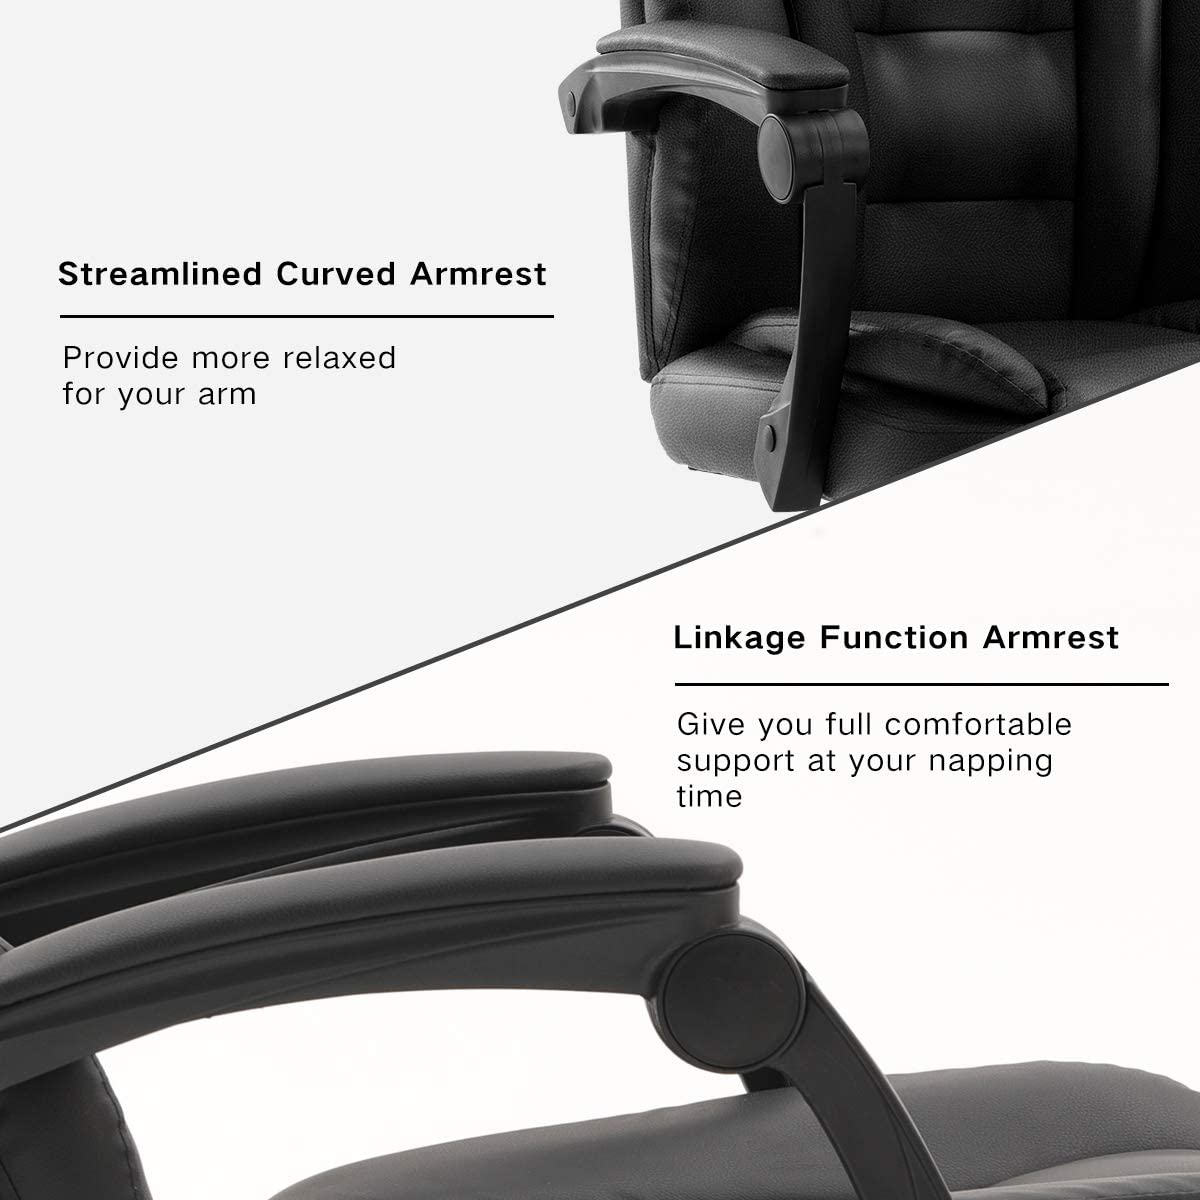 PU Leather Swivel Desk Chair,Adjustable Height High-Back Reclining Chair with Padded Armrest and Footrest,Black Hbada Ergonomic Executive Office Chair